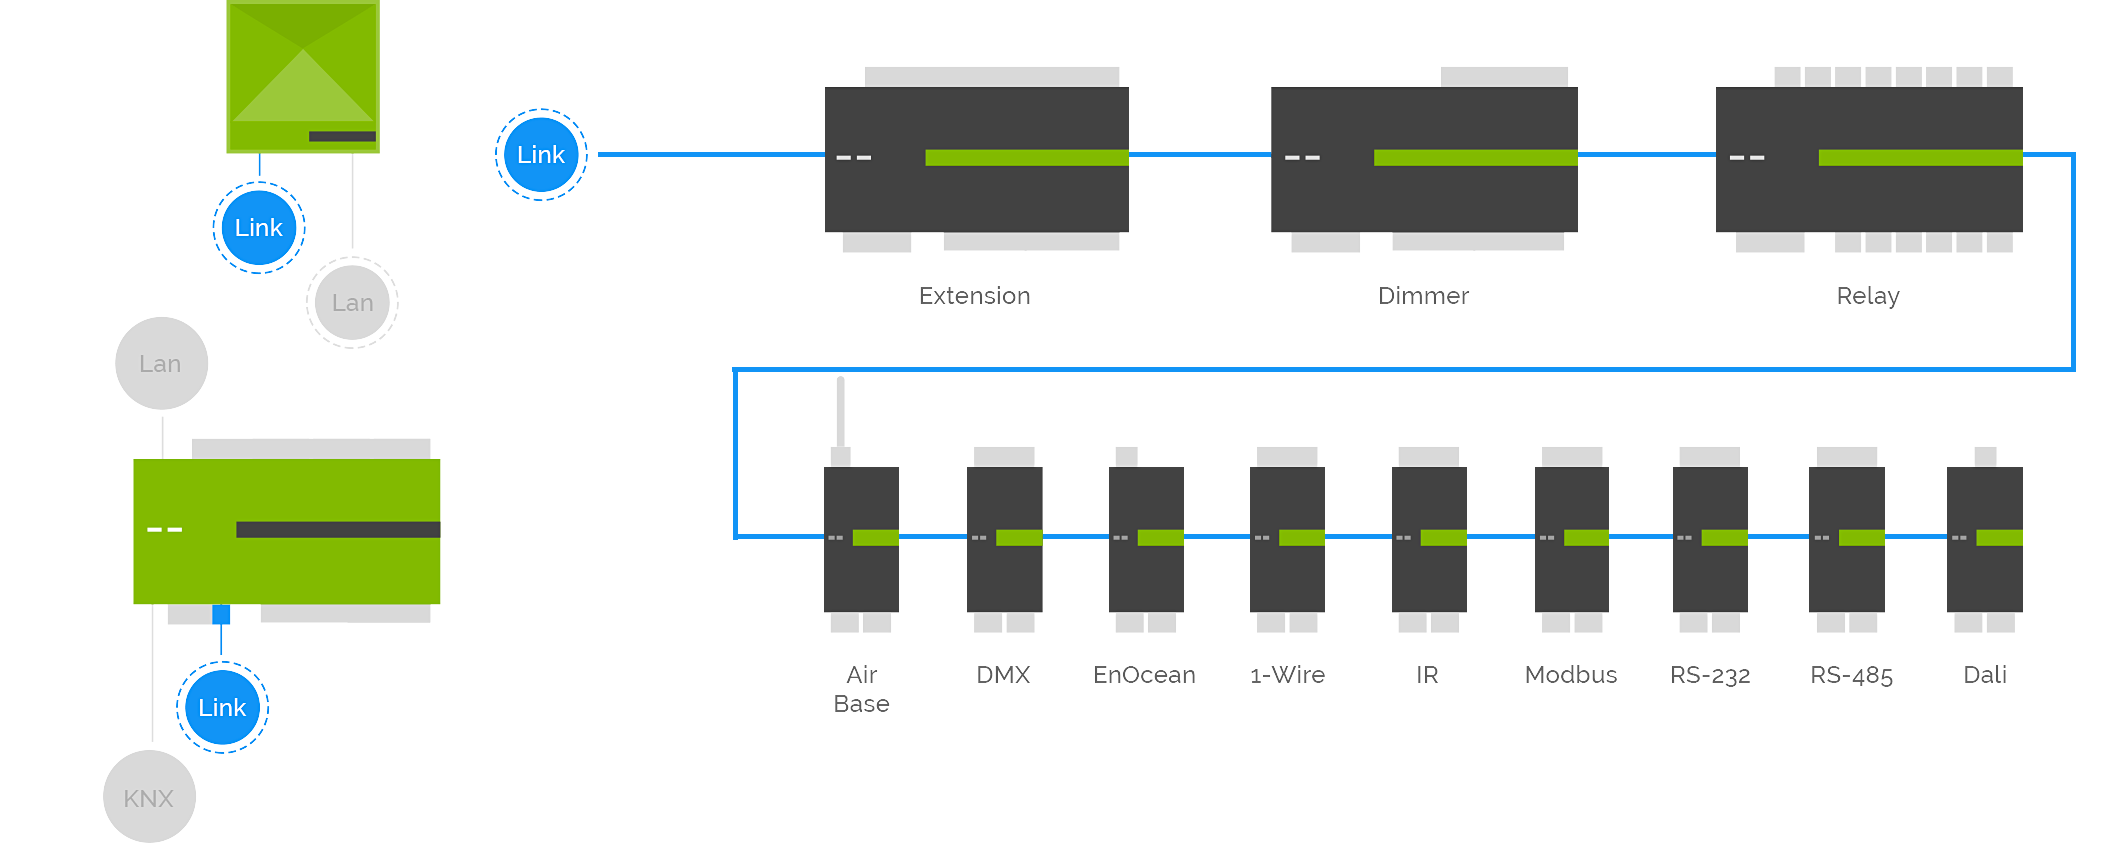 Loxone_Overview_Extensions.png